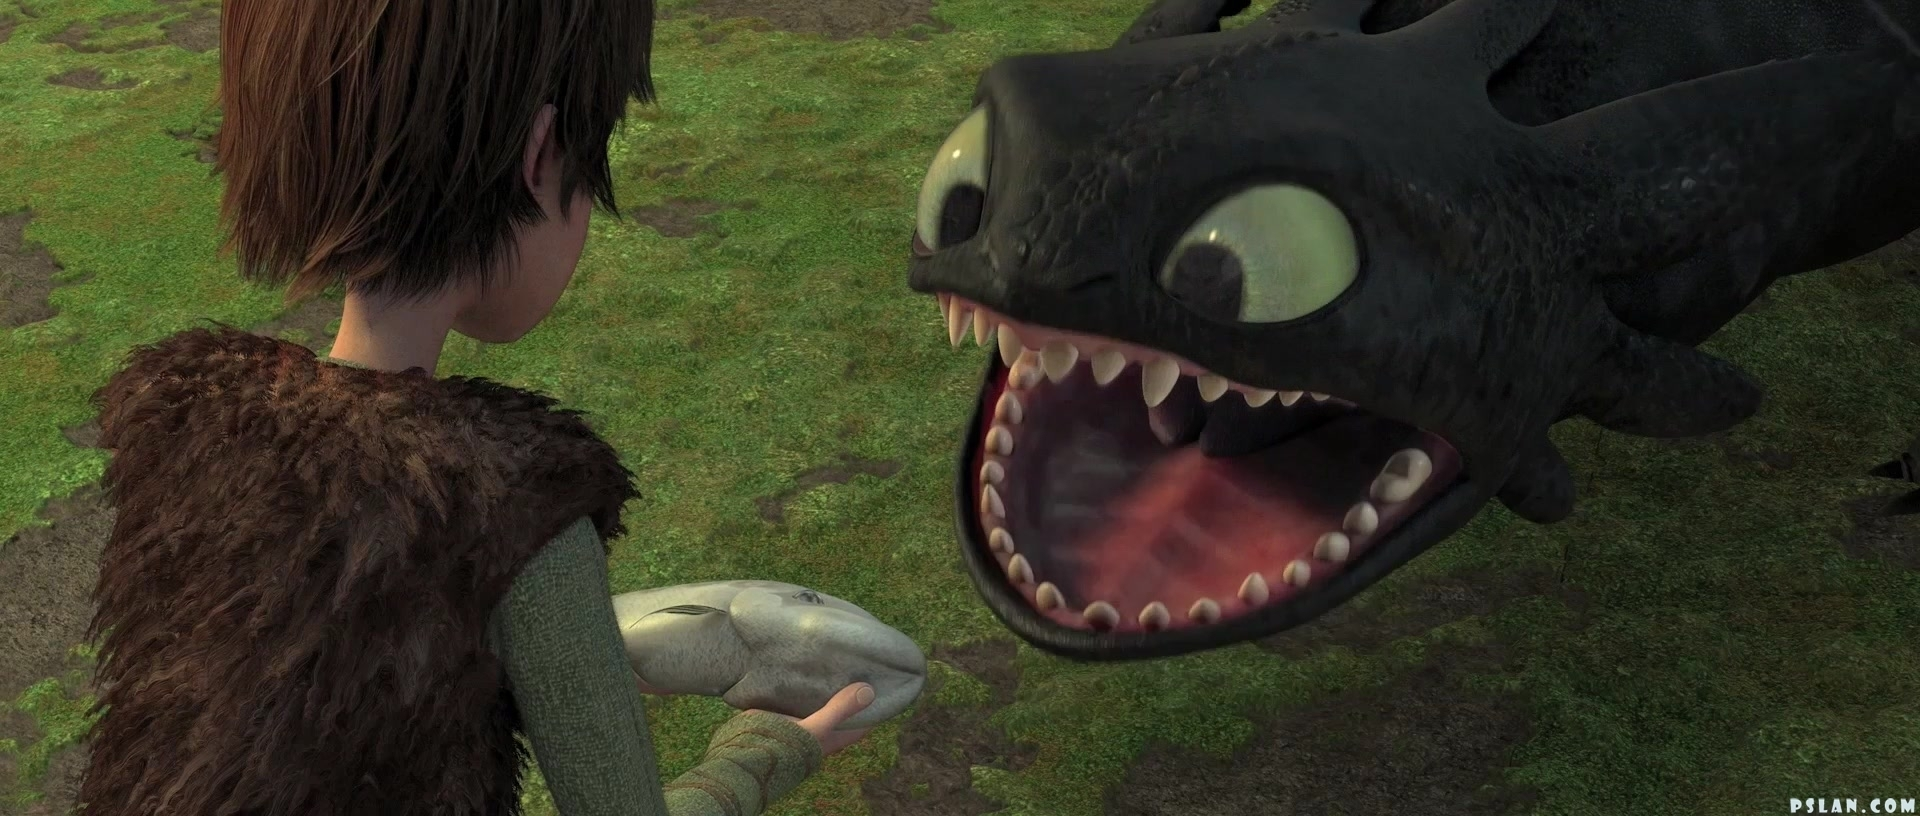 How To Train Your Dragon Hiccup And Toothless Fanfiction